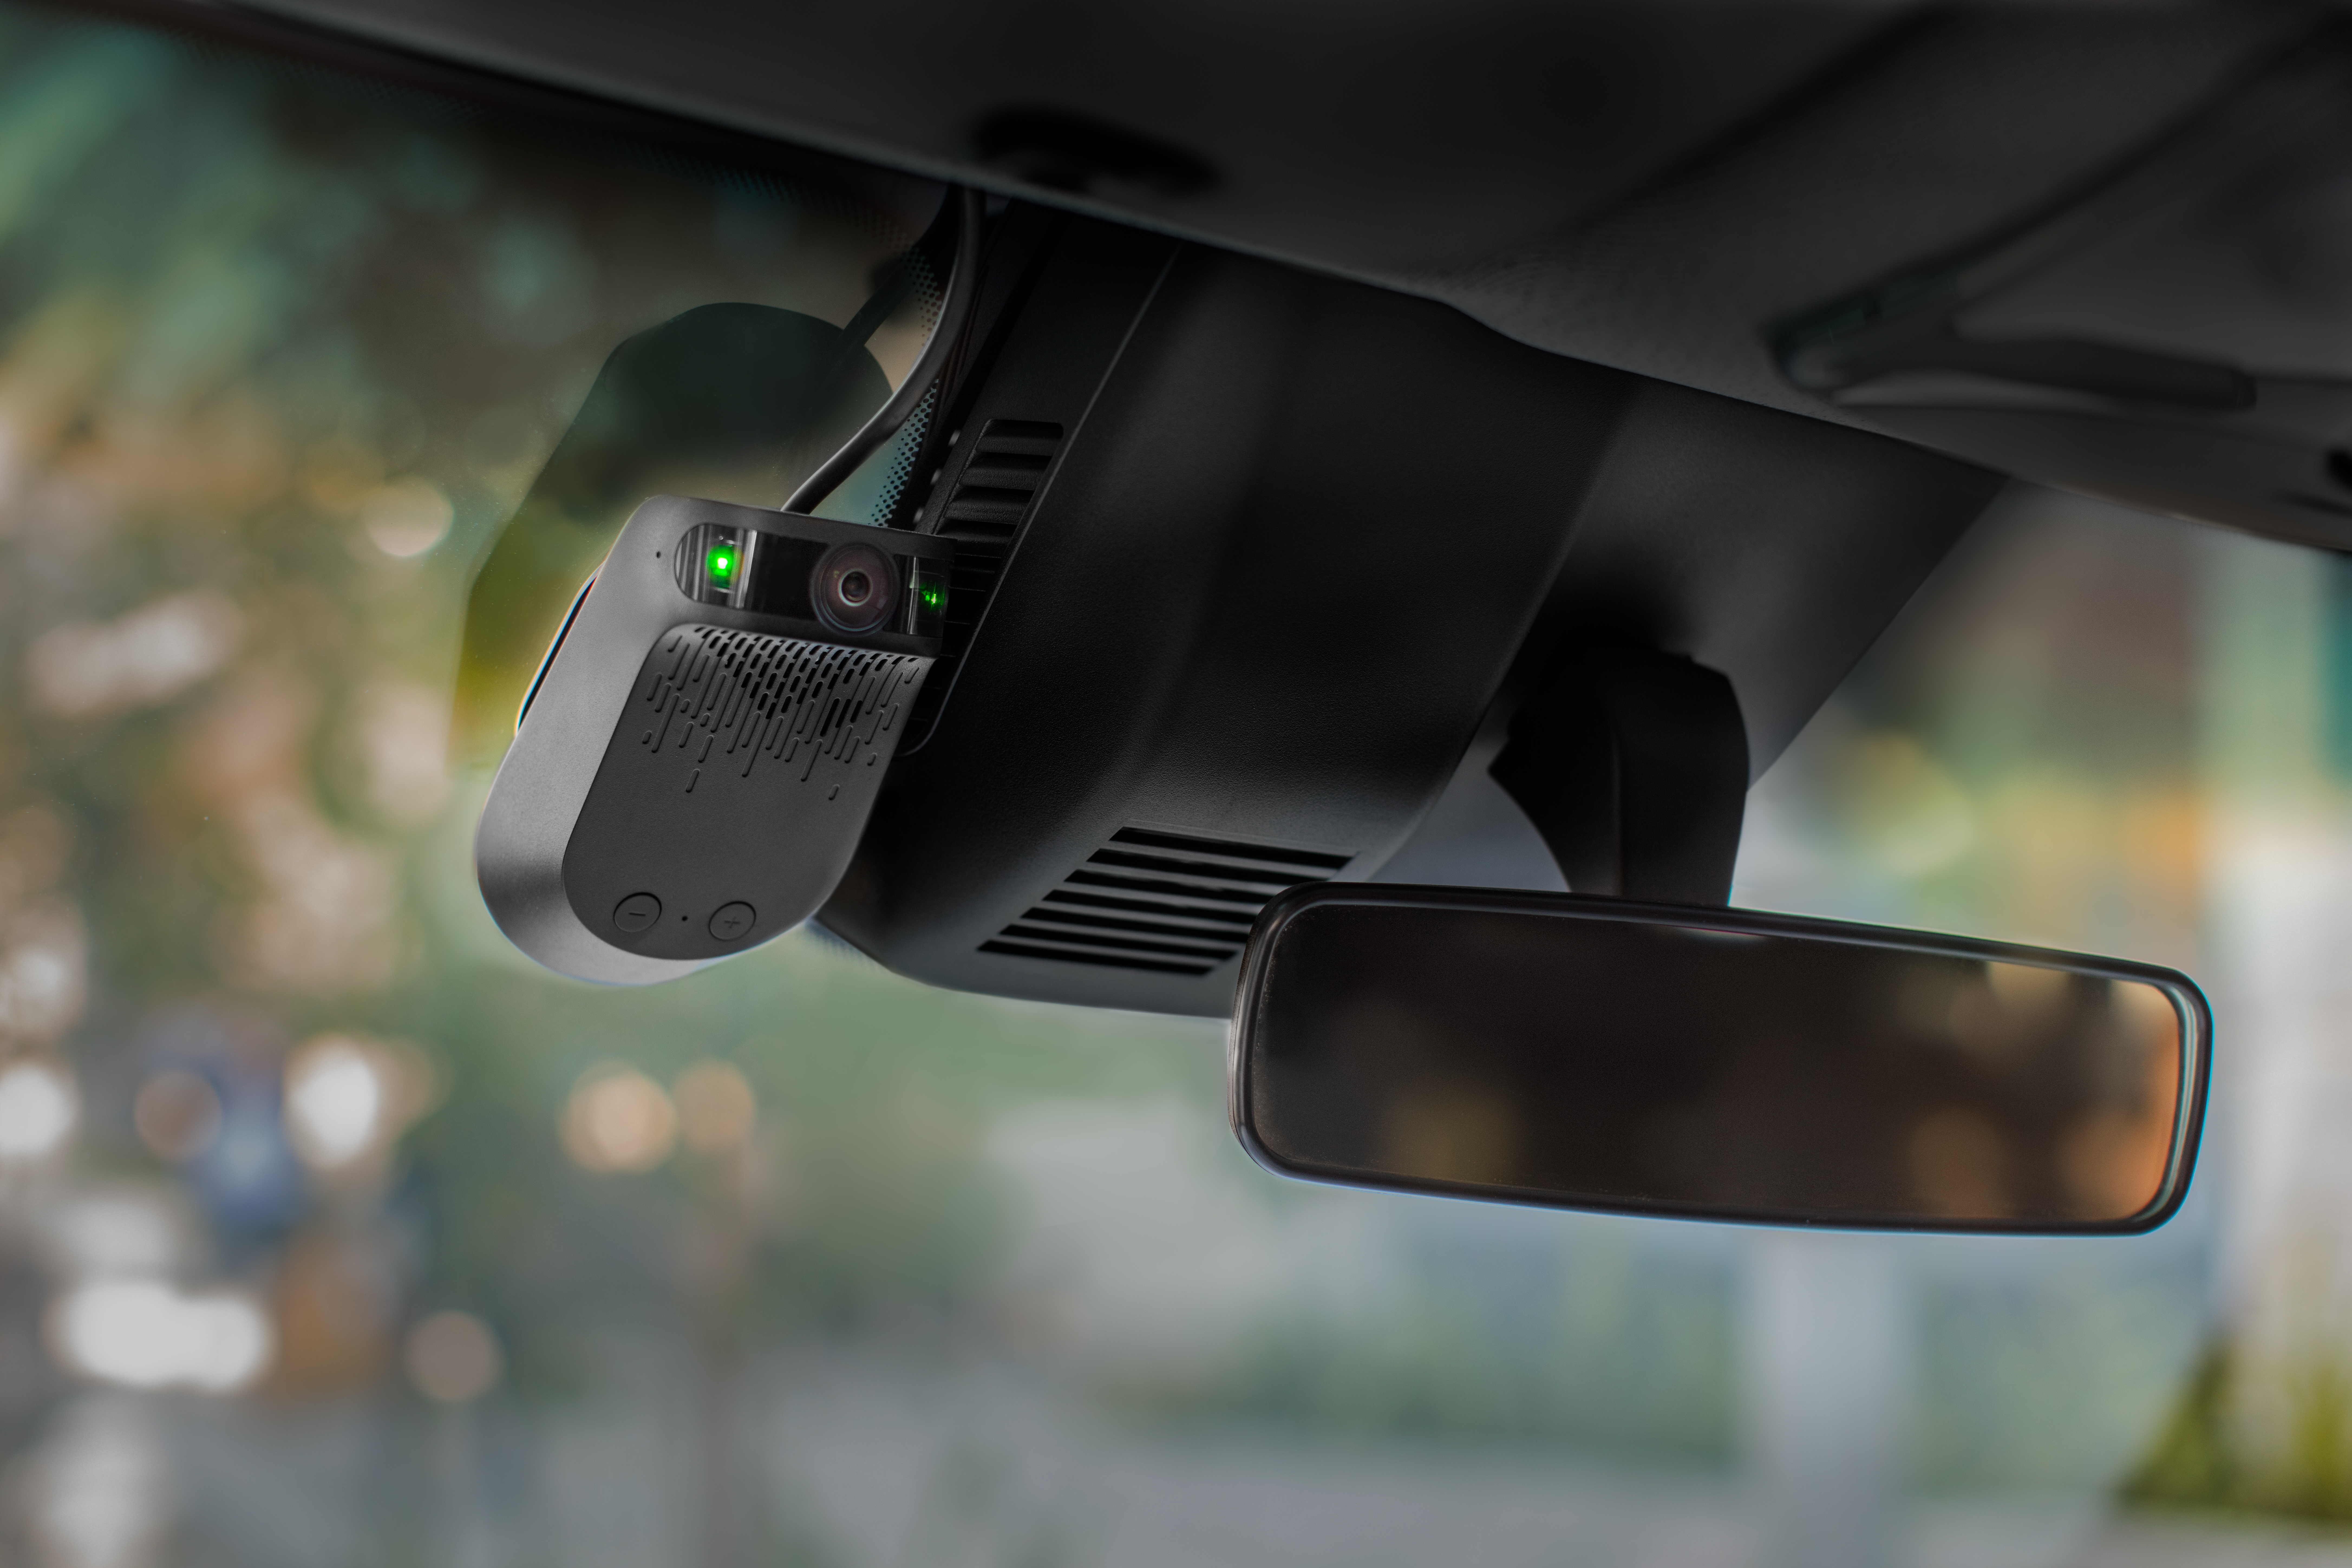 Nauto's device helps track driver behavior. The company announced Wednesday, July 19, 2017, it raised $159 million in a Series B financing round.